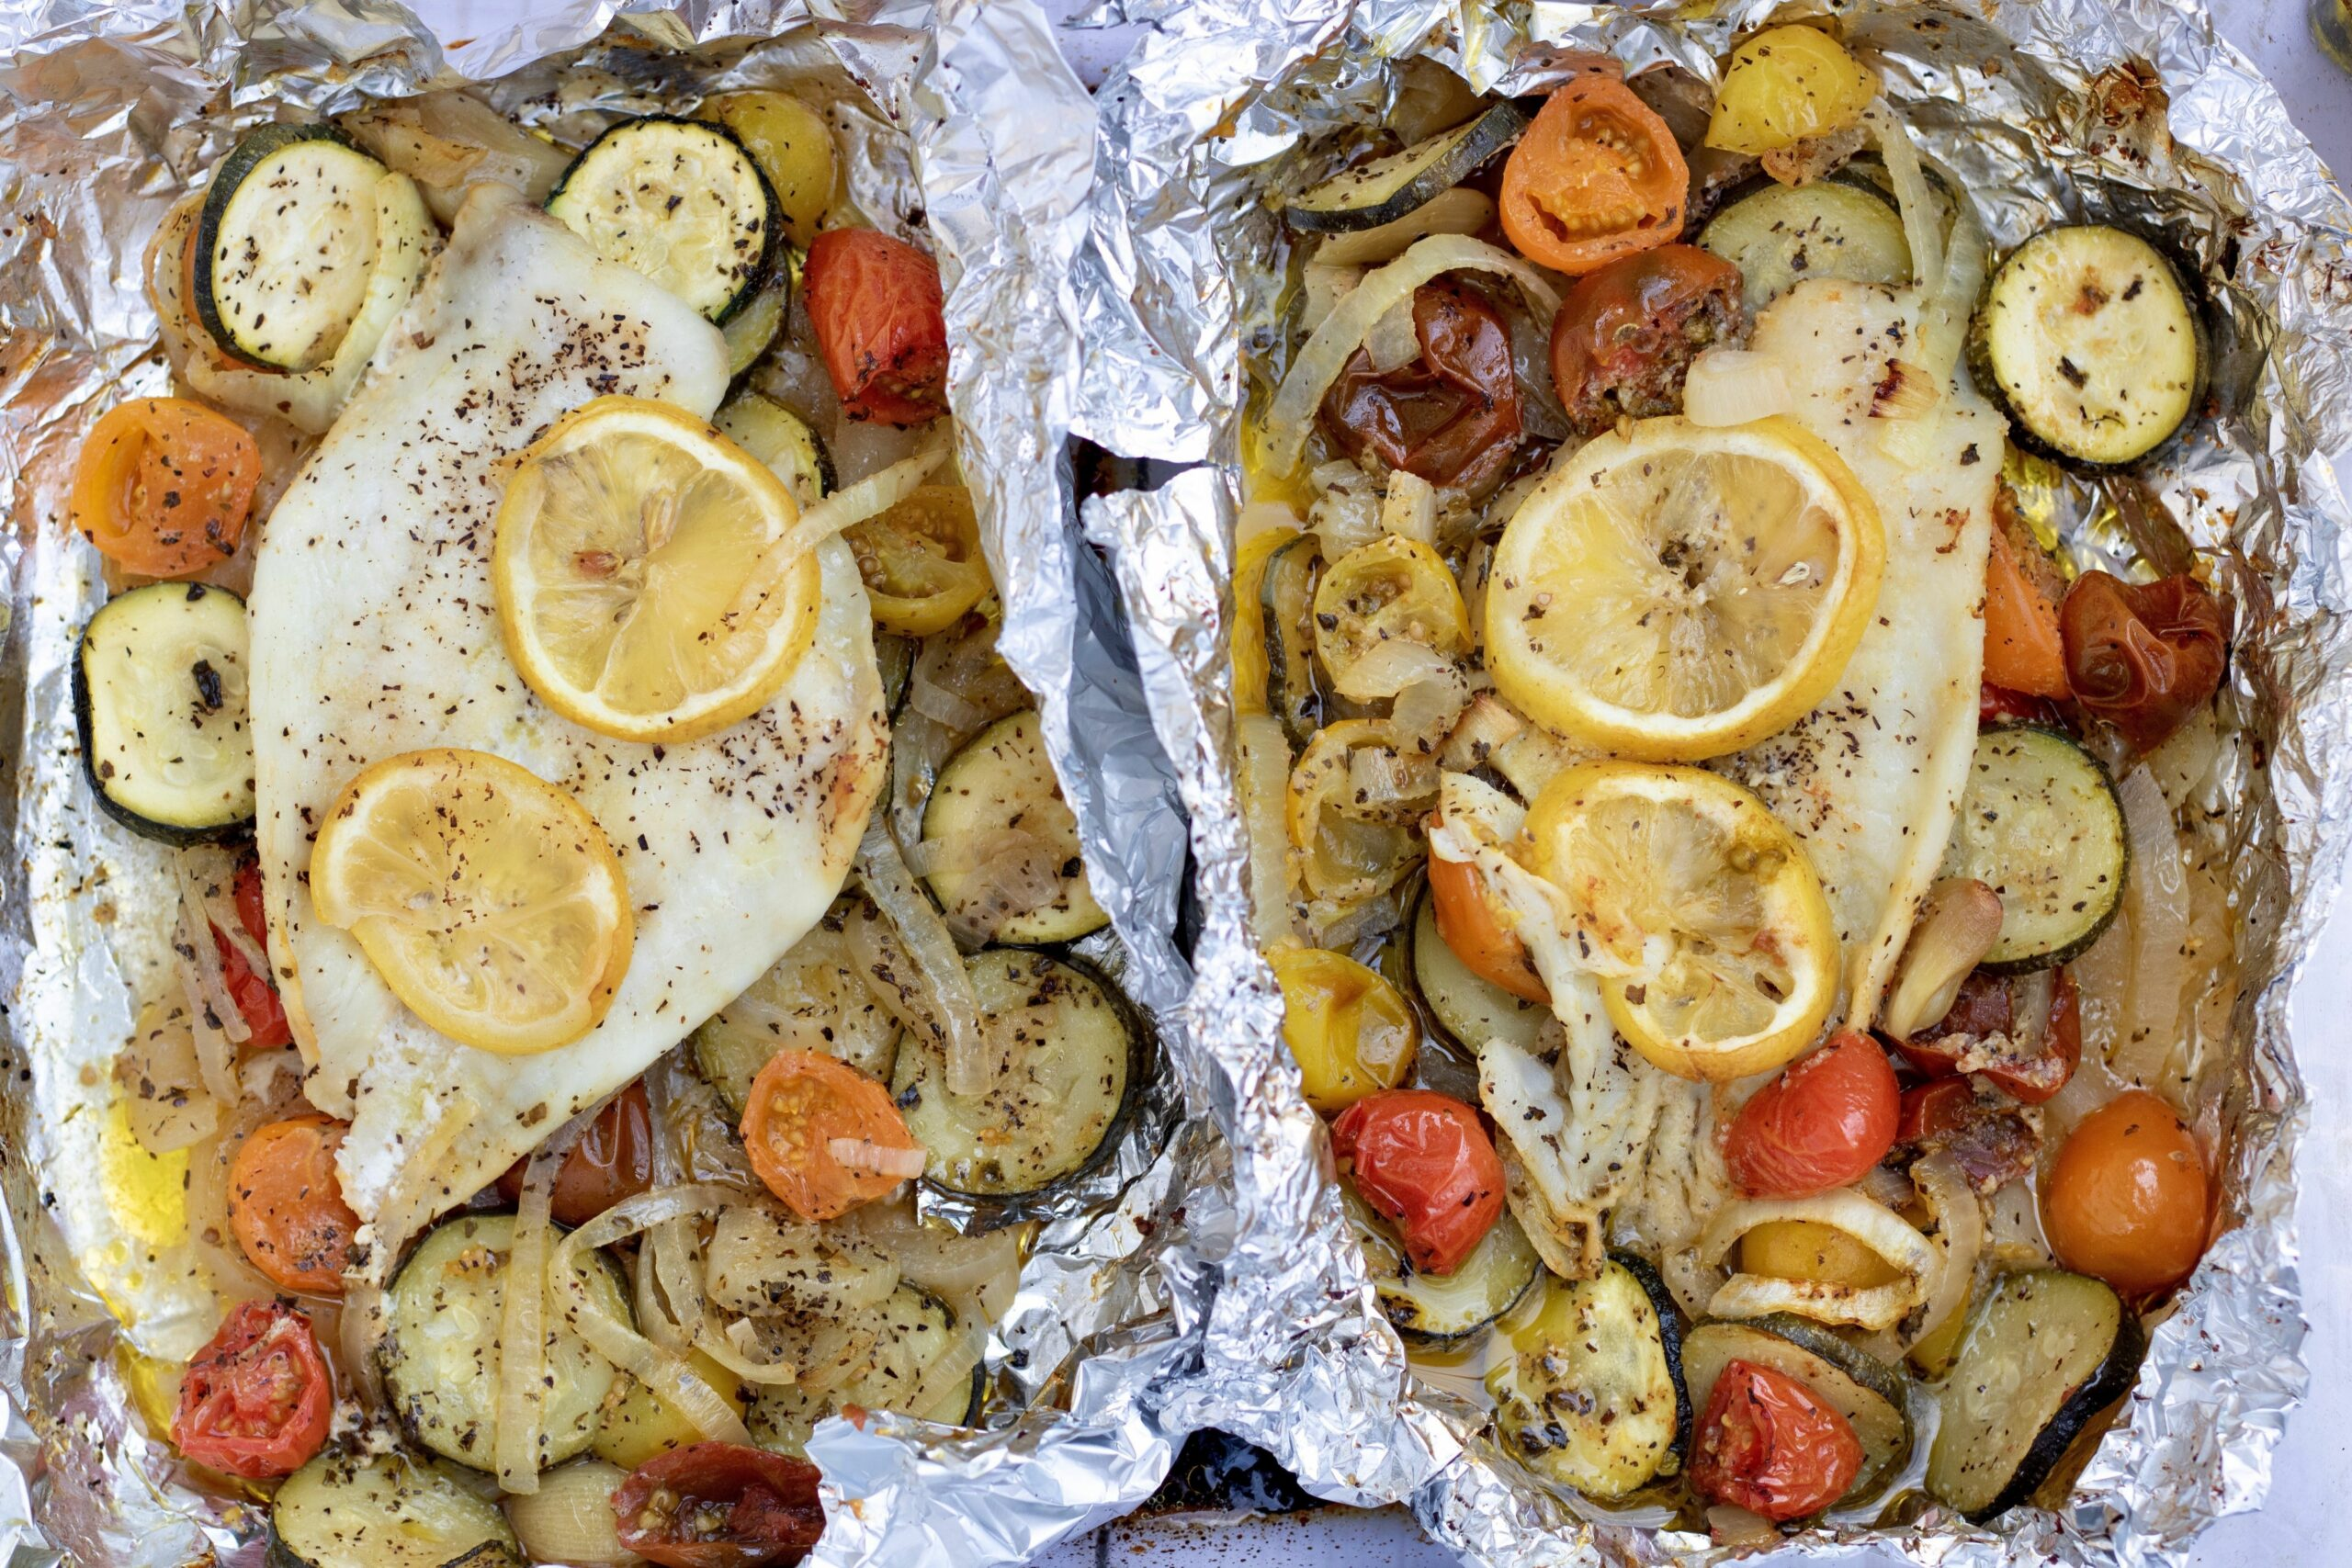 Foil Baked Fish with Veggies - Recipes Fish In Foil Packets